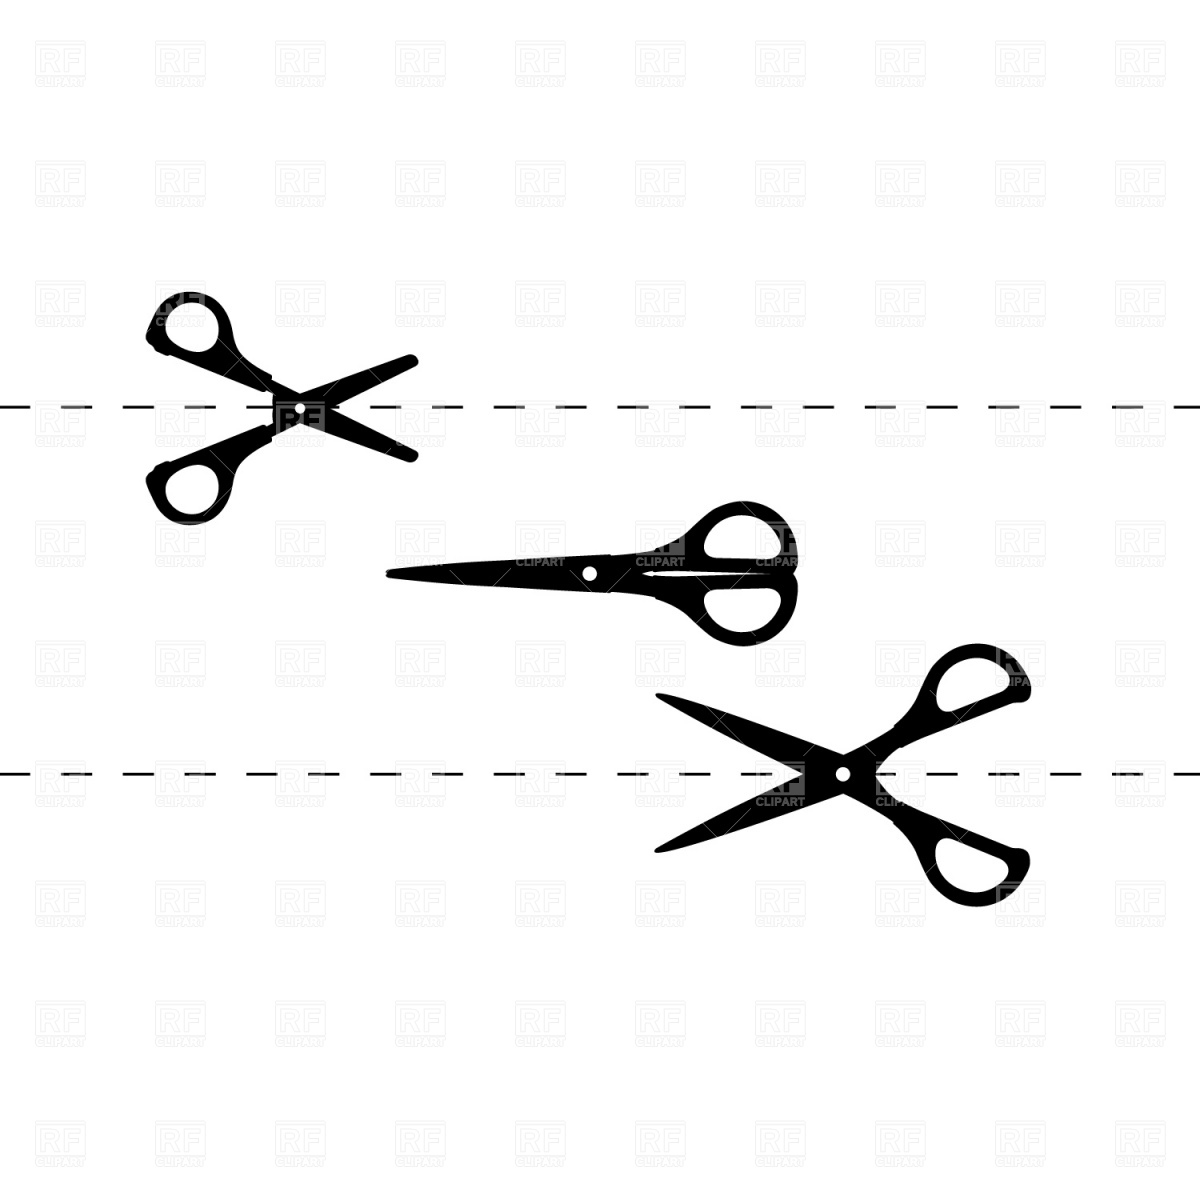 Cutting Line Cliparts #2815844 - PNG Scissors Cutting Dotted Line